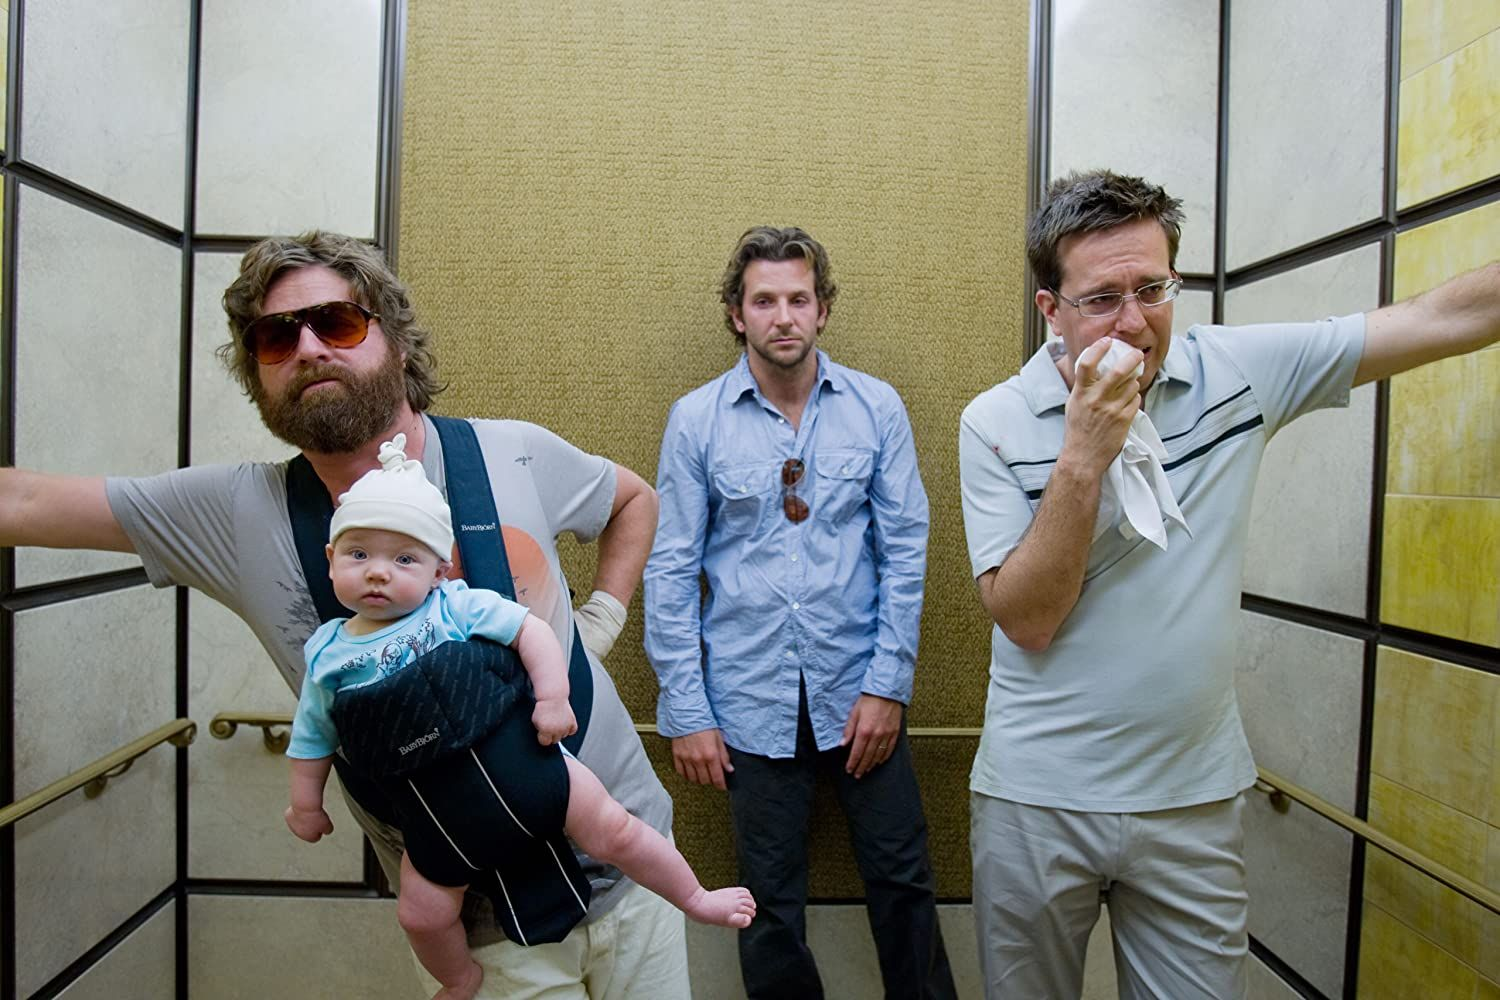 Elevator Scene in The Hangover